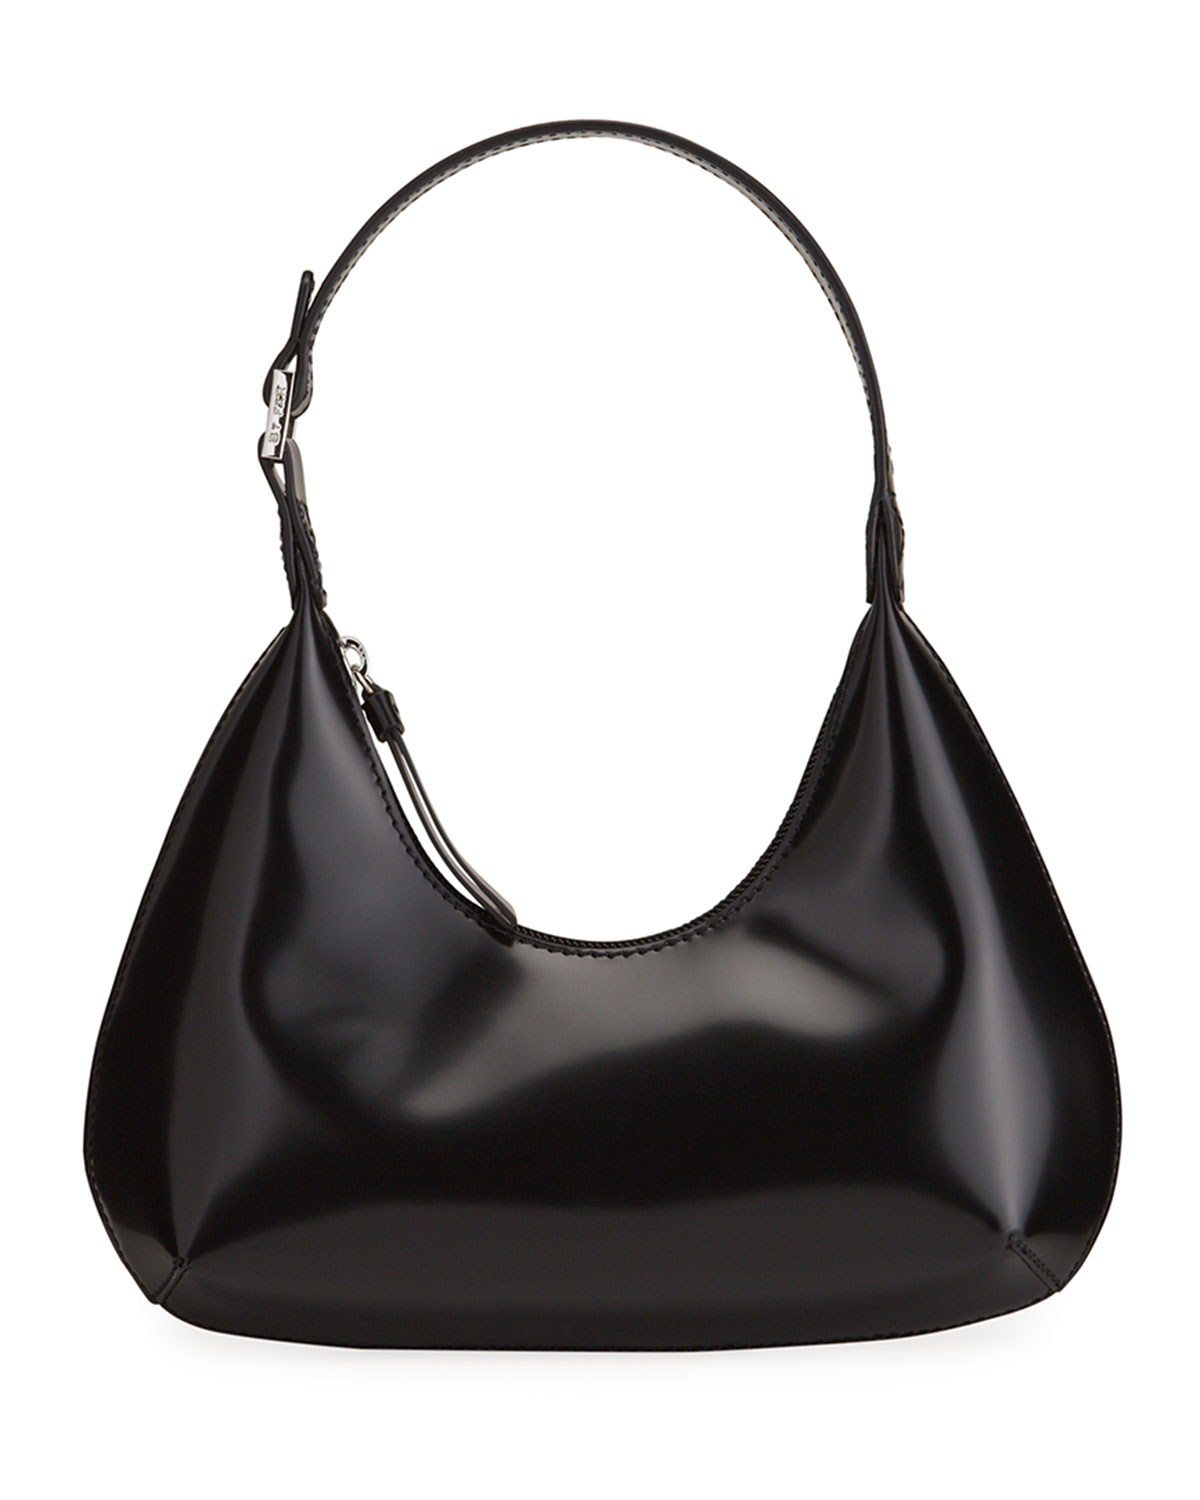 Amber Baby Semi-Patent Leather Shoulder Bag